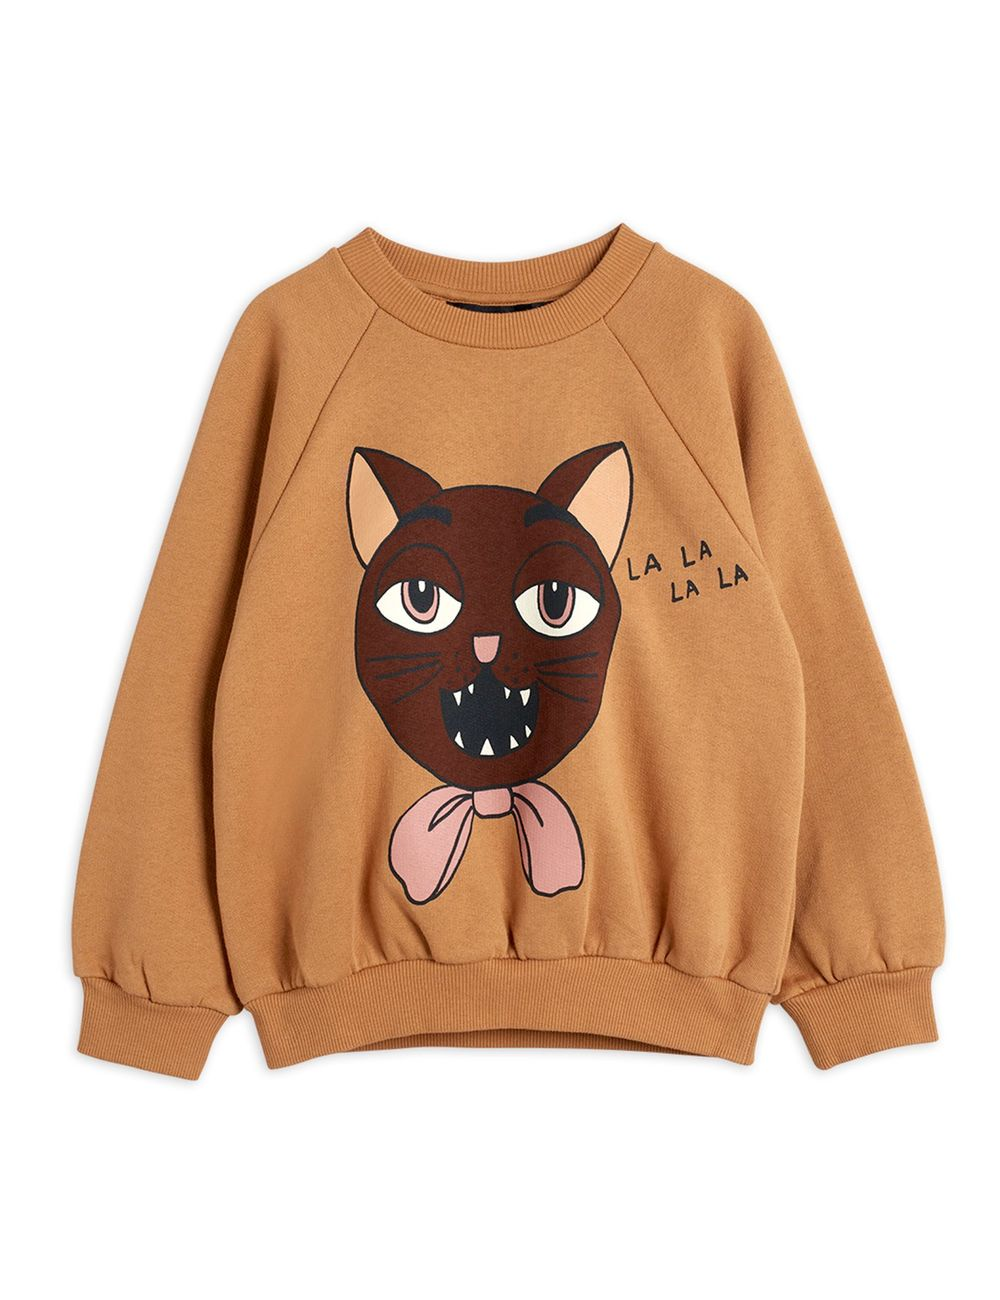 MINI RODINI CAT CHOIR SP SWEATSHIRT, BEIGE